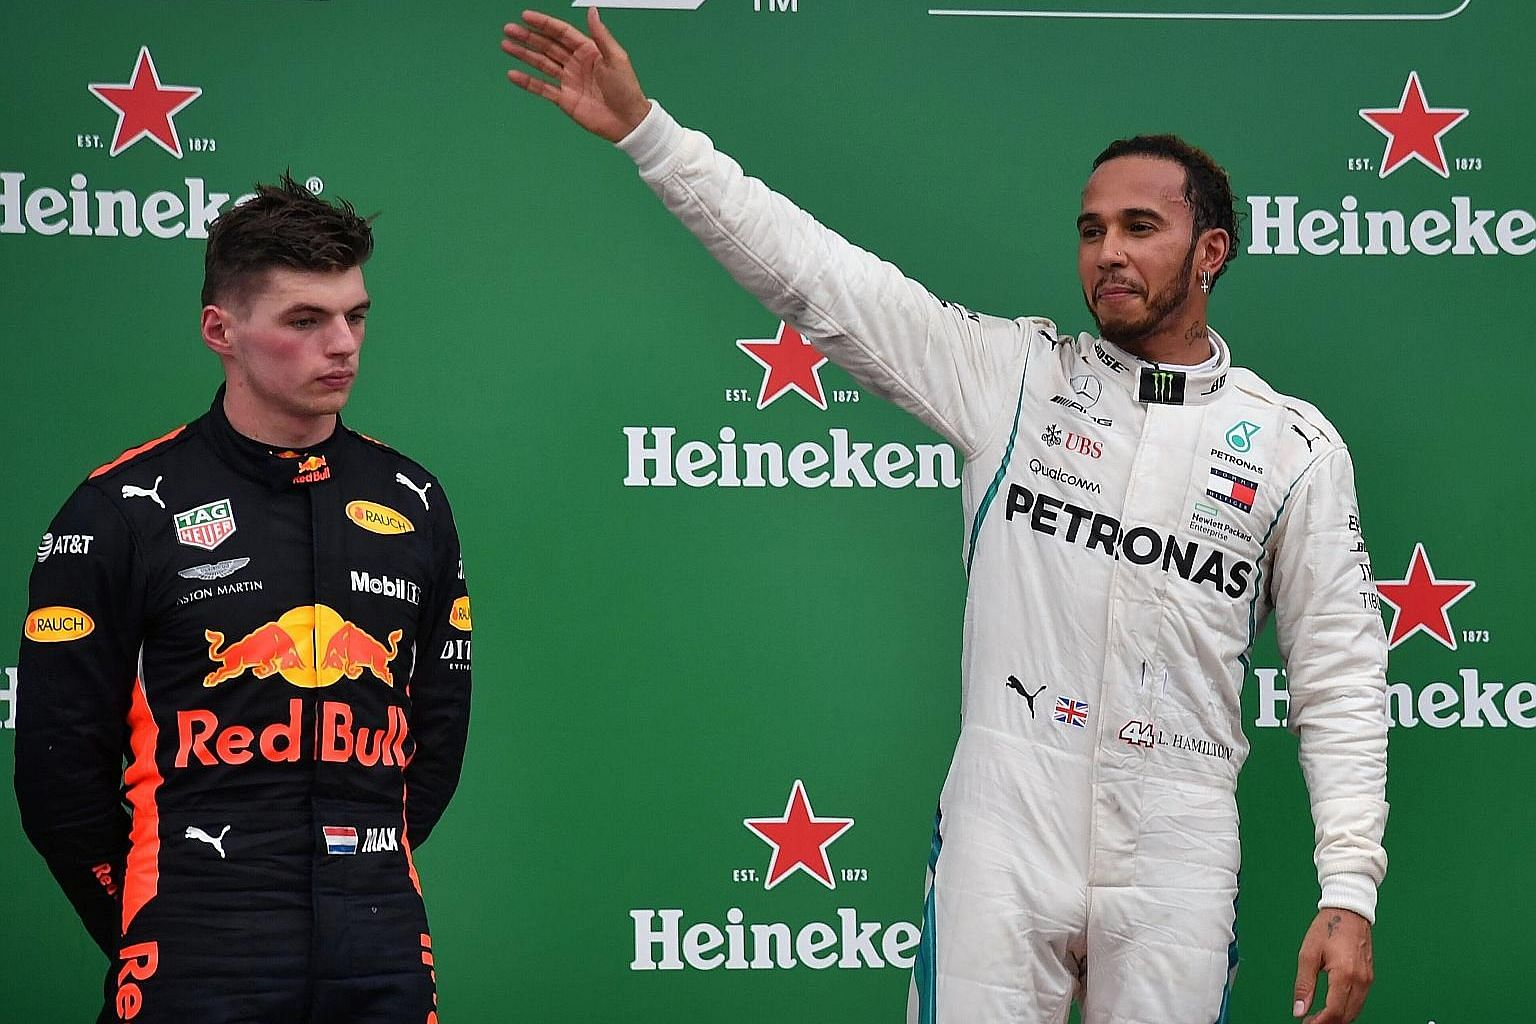 Lewis Hamilton celebrates his 10th victory of the season while Max Verstappen can only look on. The Red Bull driver's opportunity of winning back-to-back grands prix was quashed when a collision with Force India's Esteban Ocon on Lap 44 cost him the